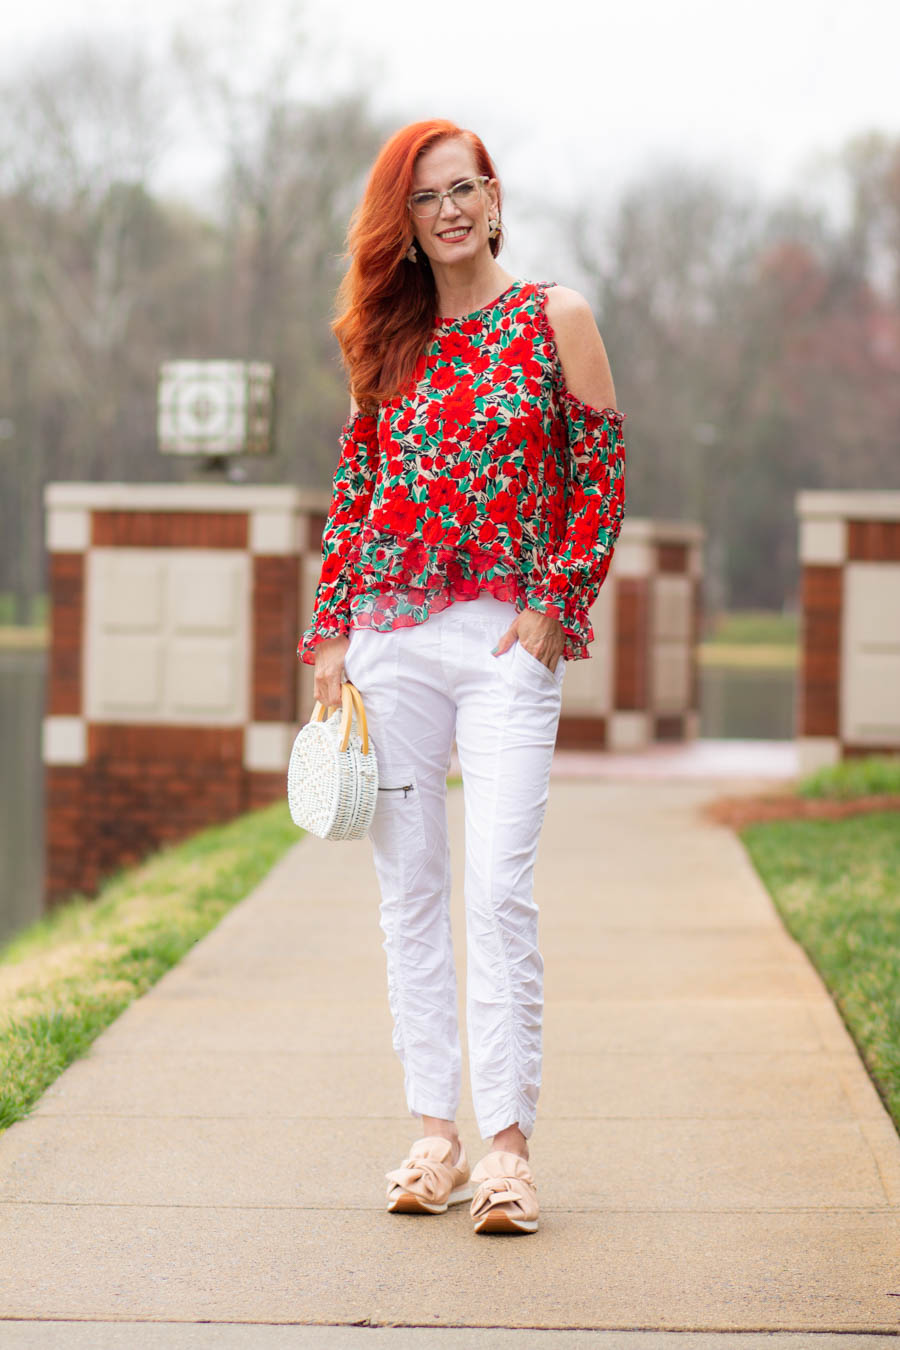 XCVI Malanda pant styled with floral top